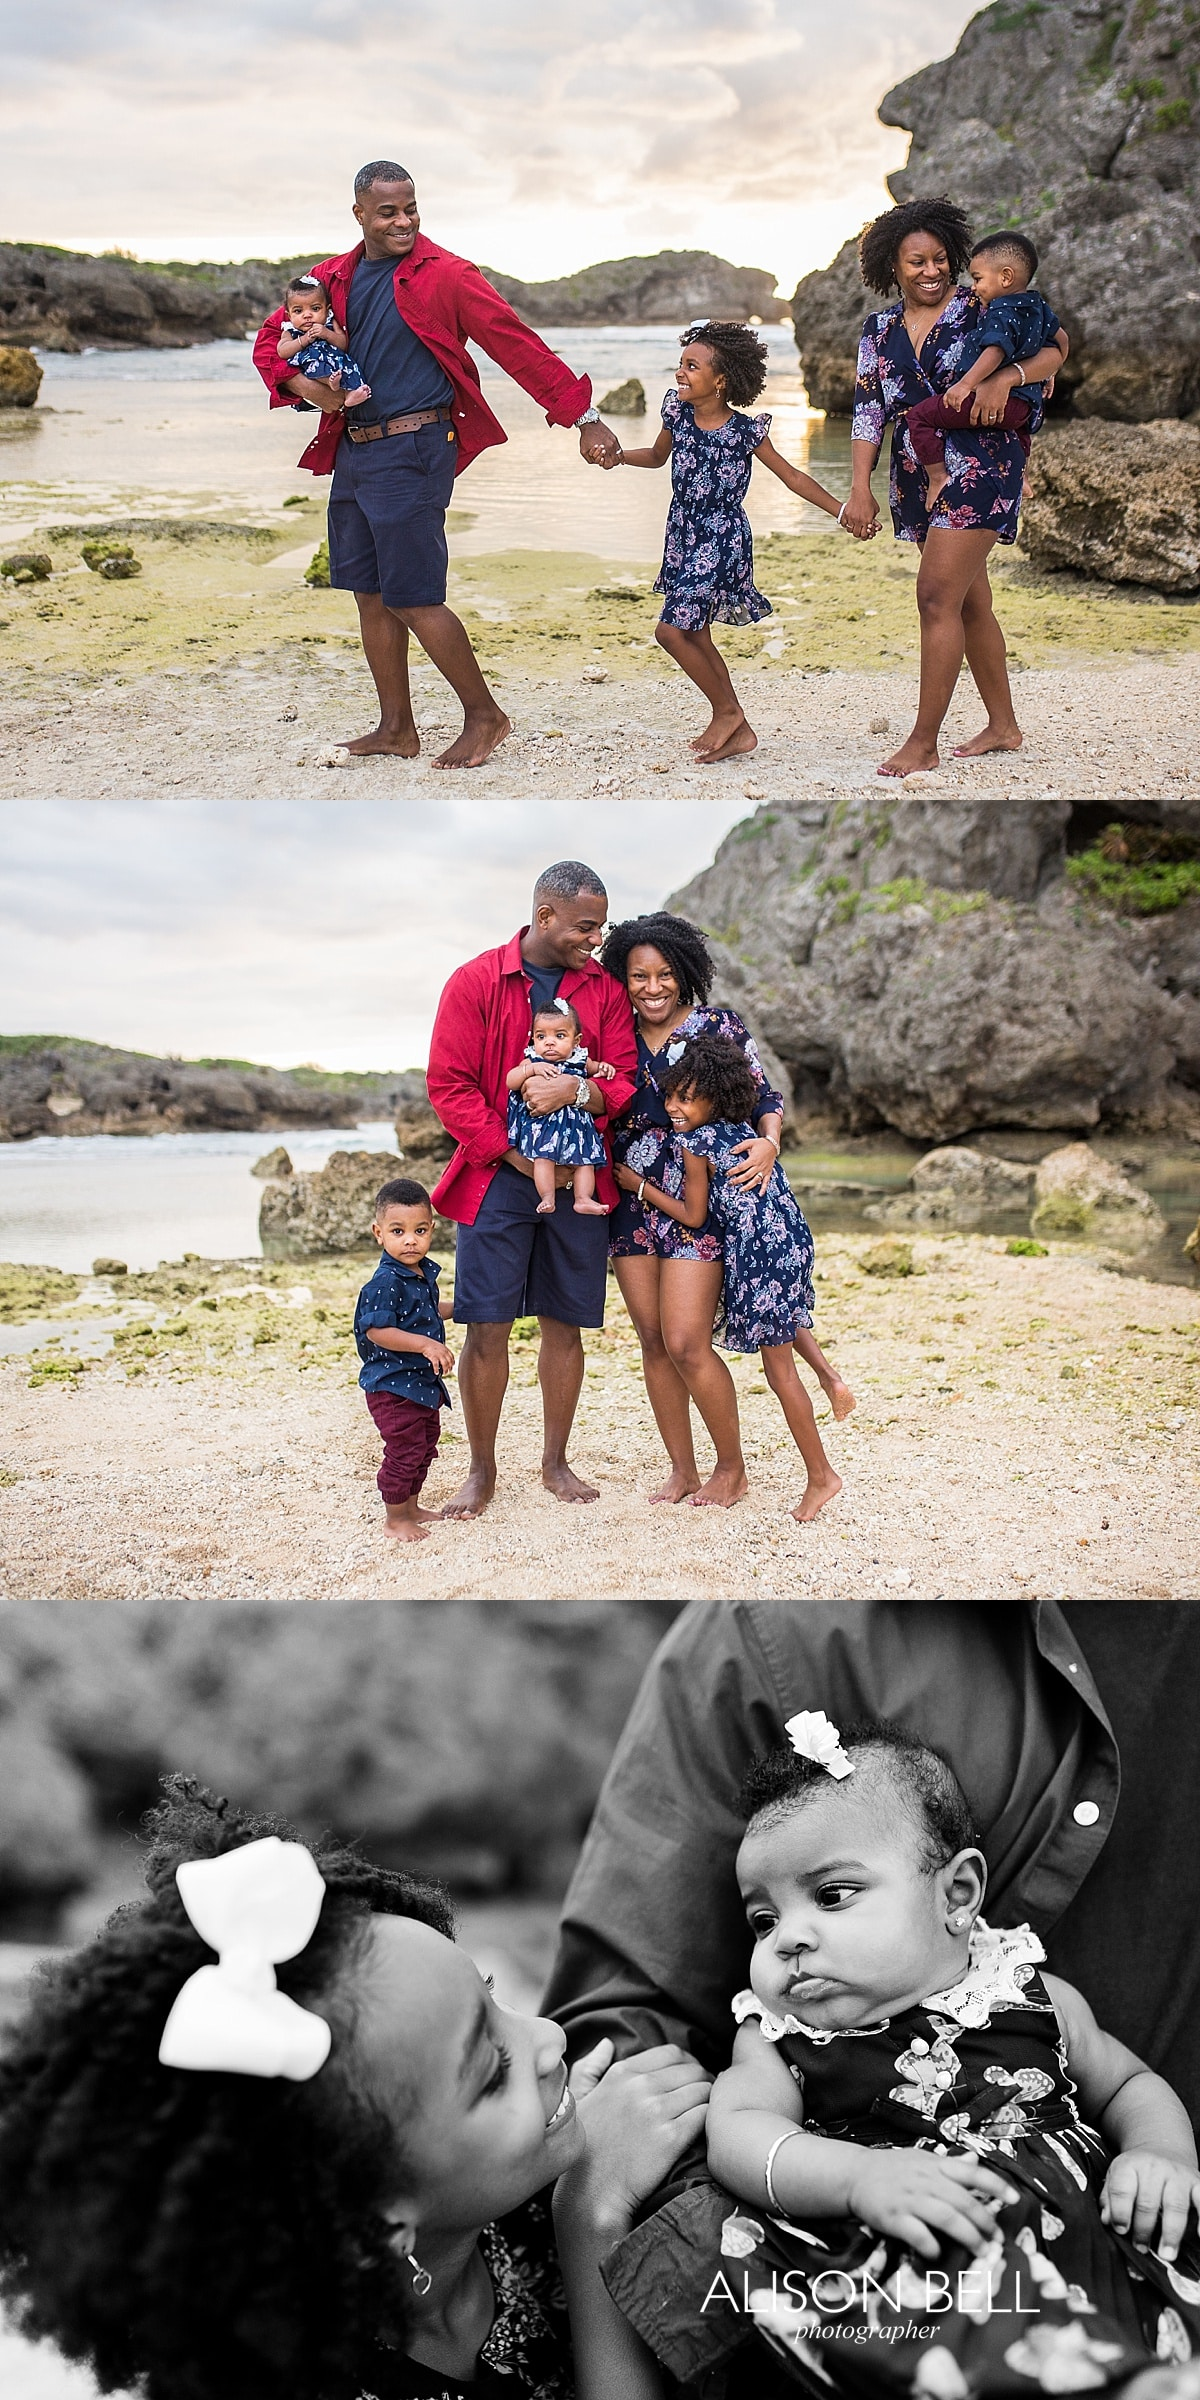 Half priced mini sessions on the beach in Okinawa Japan by Alison Bell Photographer - family and senior